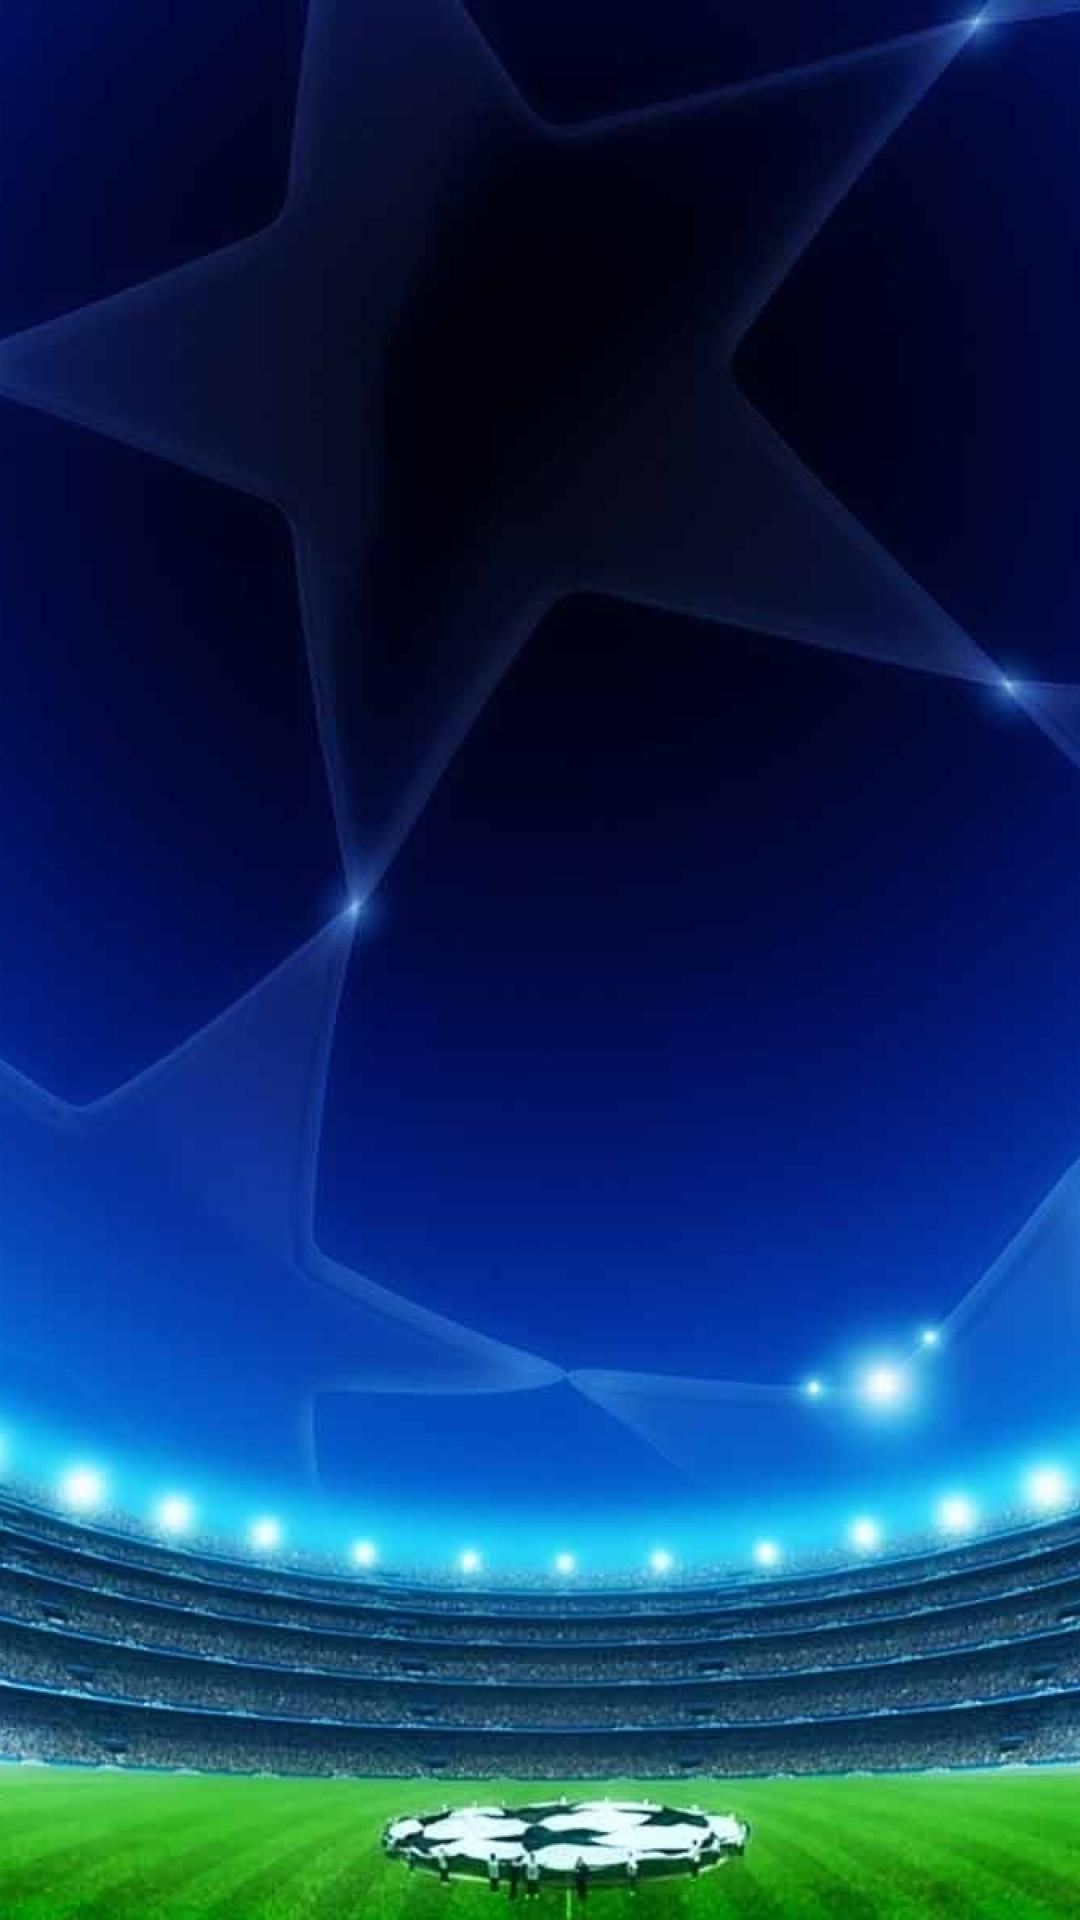 Champions league wallpaper 41640 1080x1920